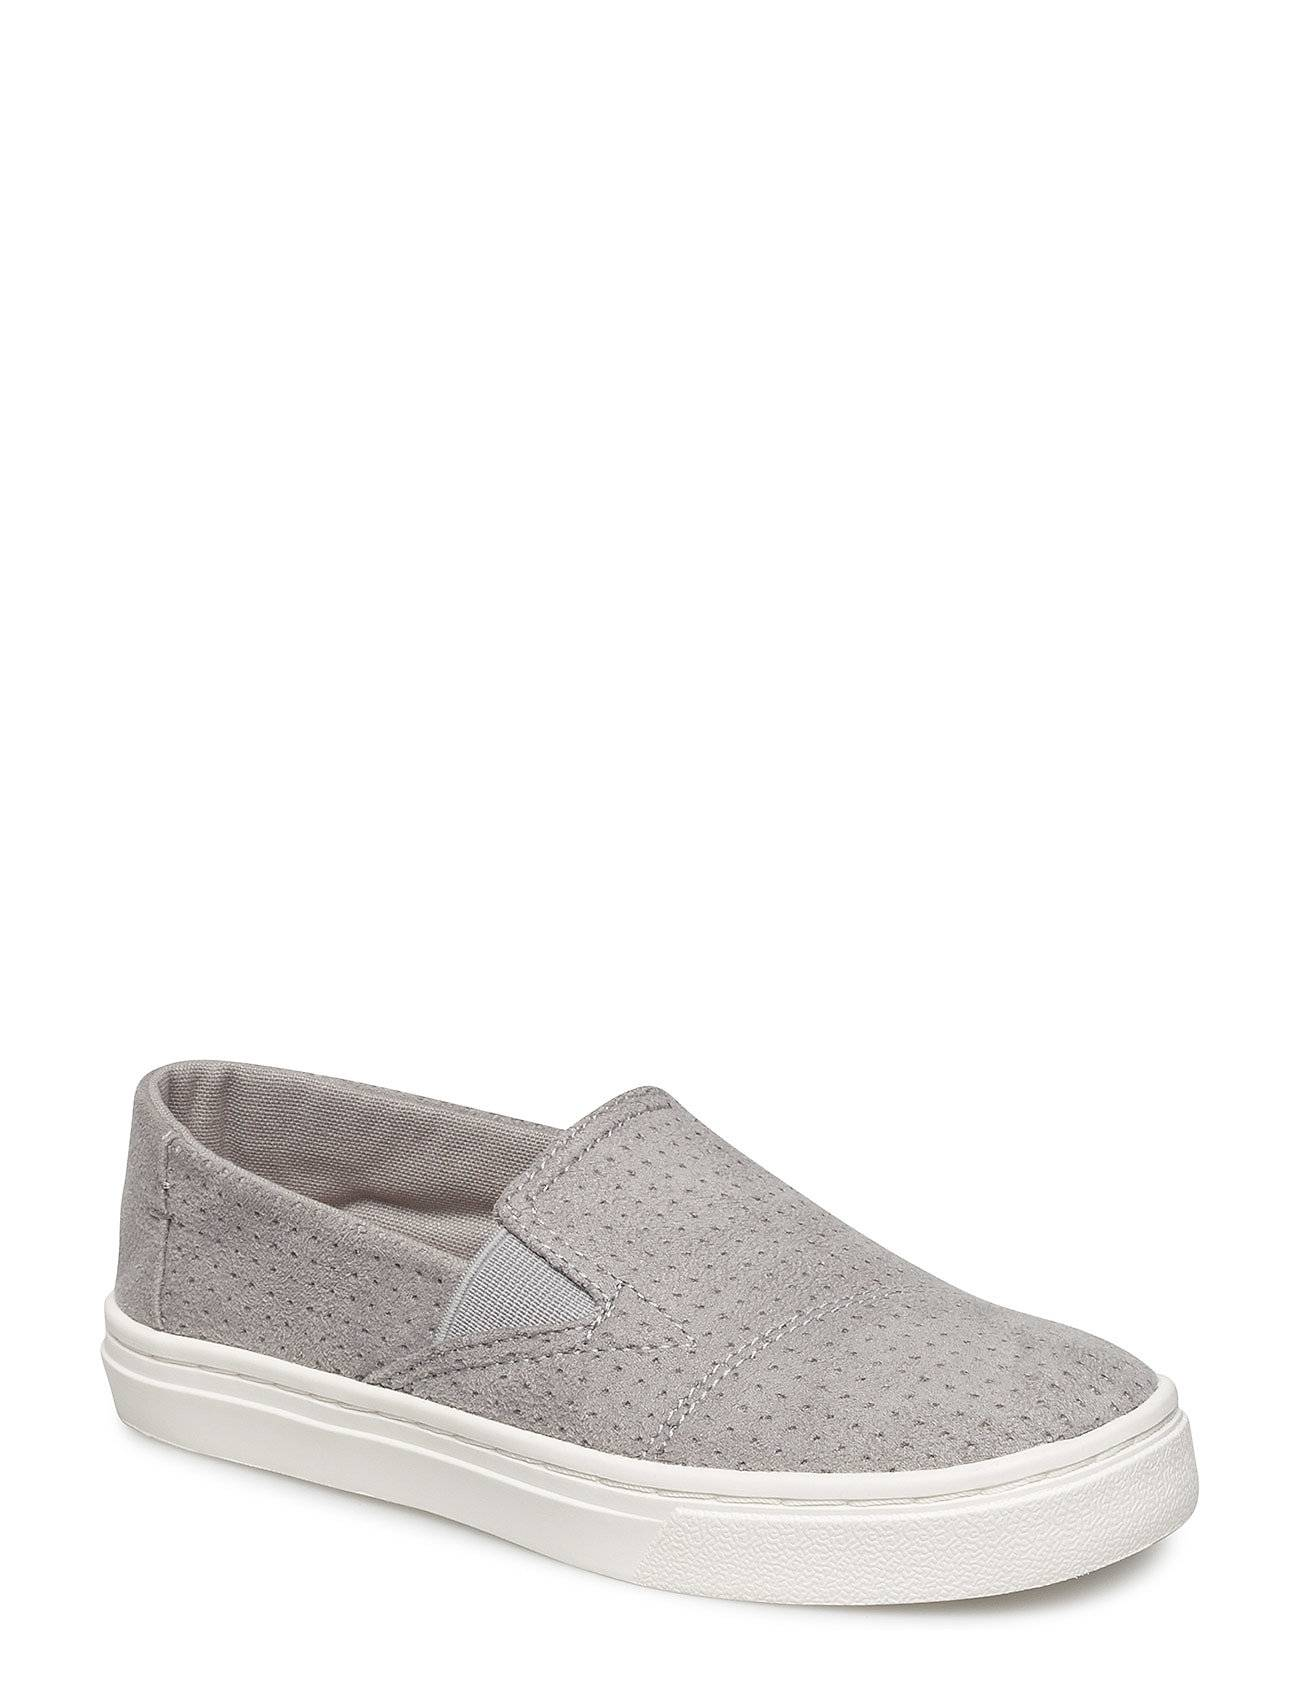 TOMS Perforated Yt Luca Slipon